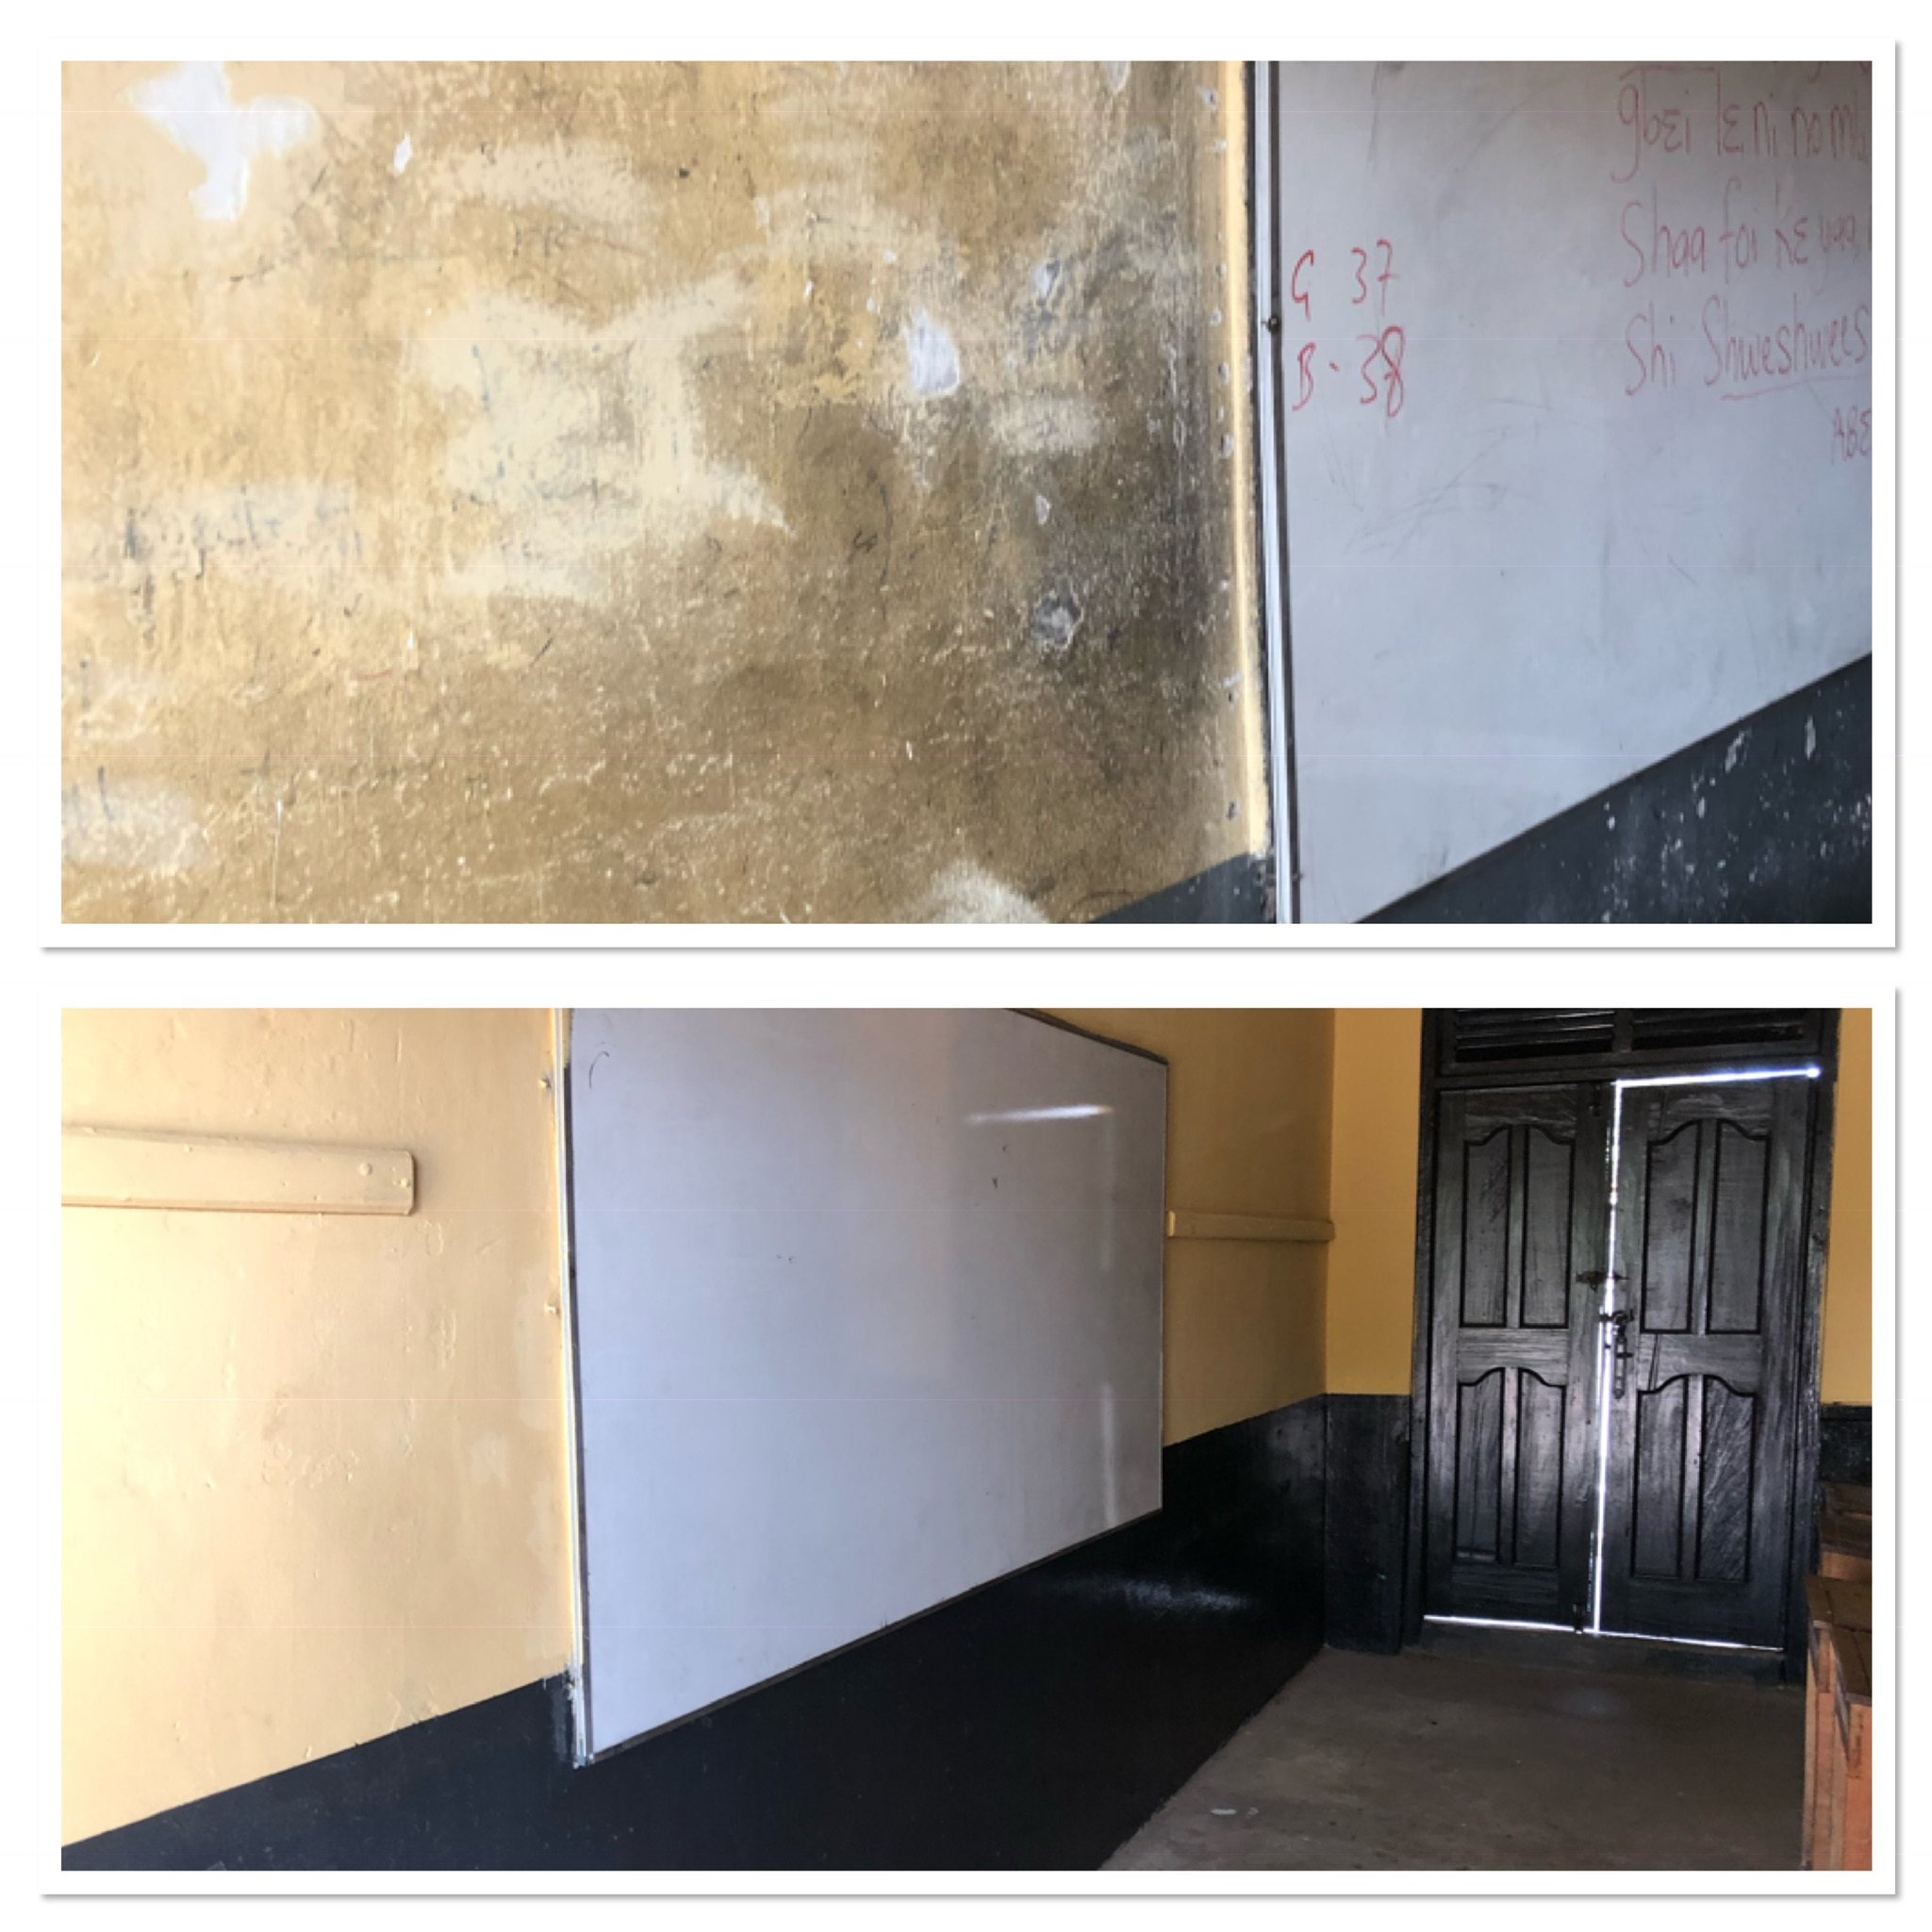 Before and after comparison of a classroom wall.